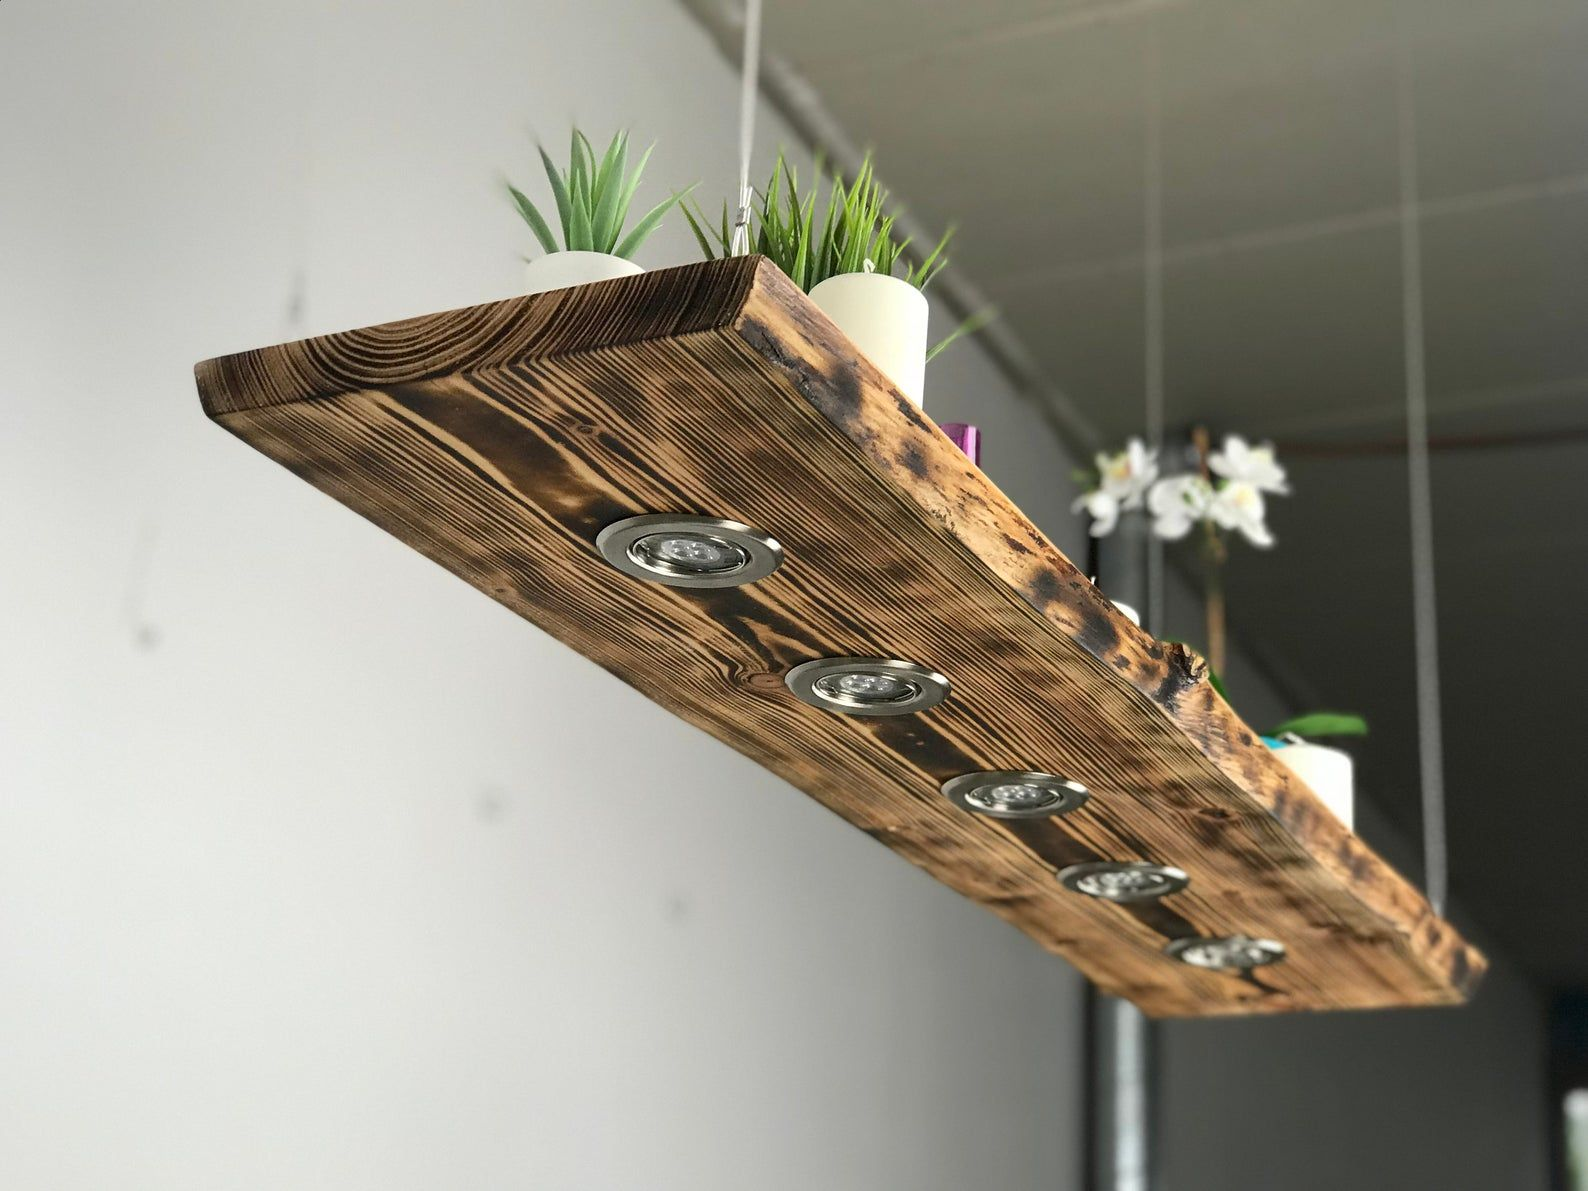 Lampen Aus Holz Blockwood Forge Ceiling Lamp Wood Flamed For The Kitchen - Living Room Vintage Hanging Lamp - Dining Room Pendant Lamp - Ceiling Lamp With Led | Holz Hängelampe, Holzlampe, Deckenlampe Holz